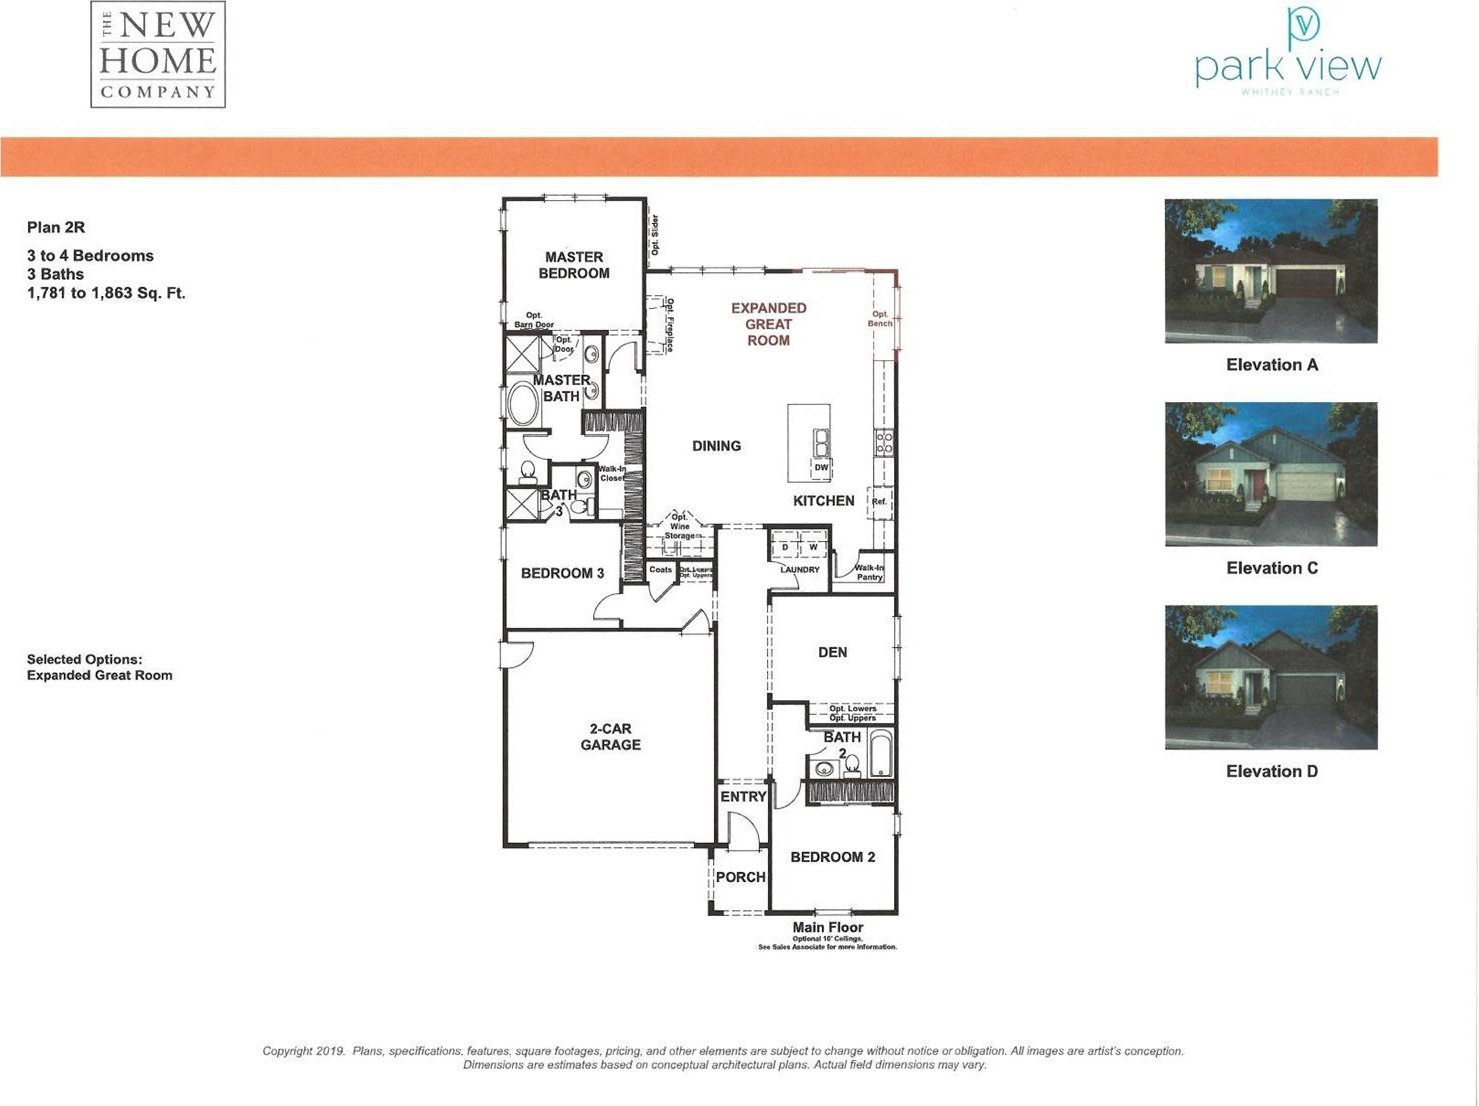 MLS 19024145 - Park View At Whitney Ranch - 800 Clementine